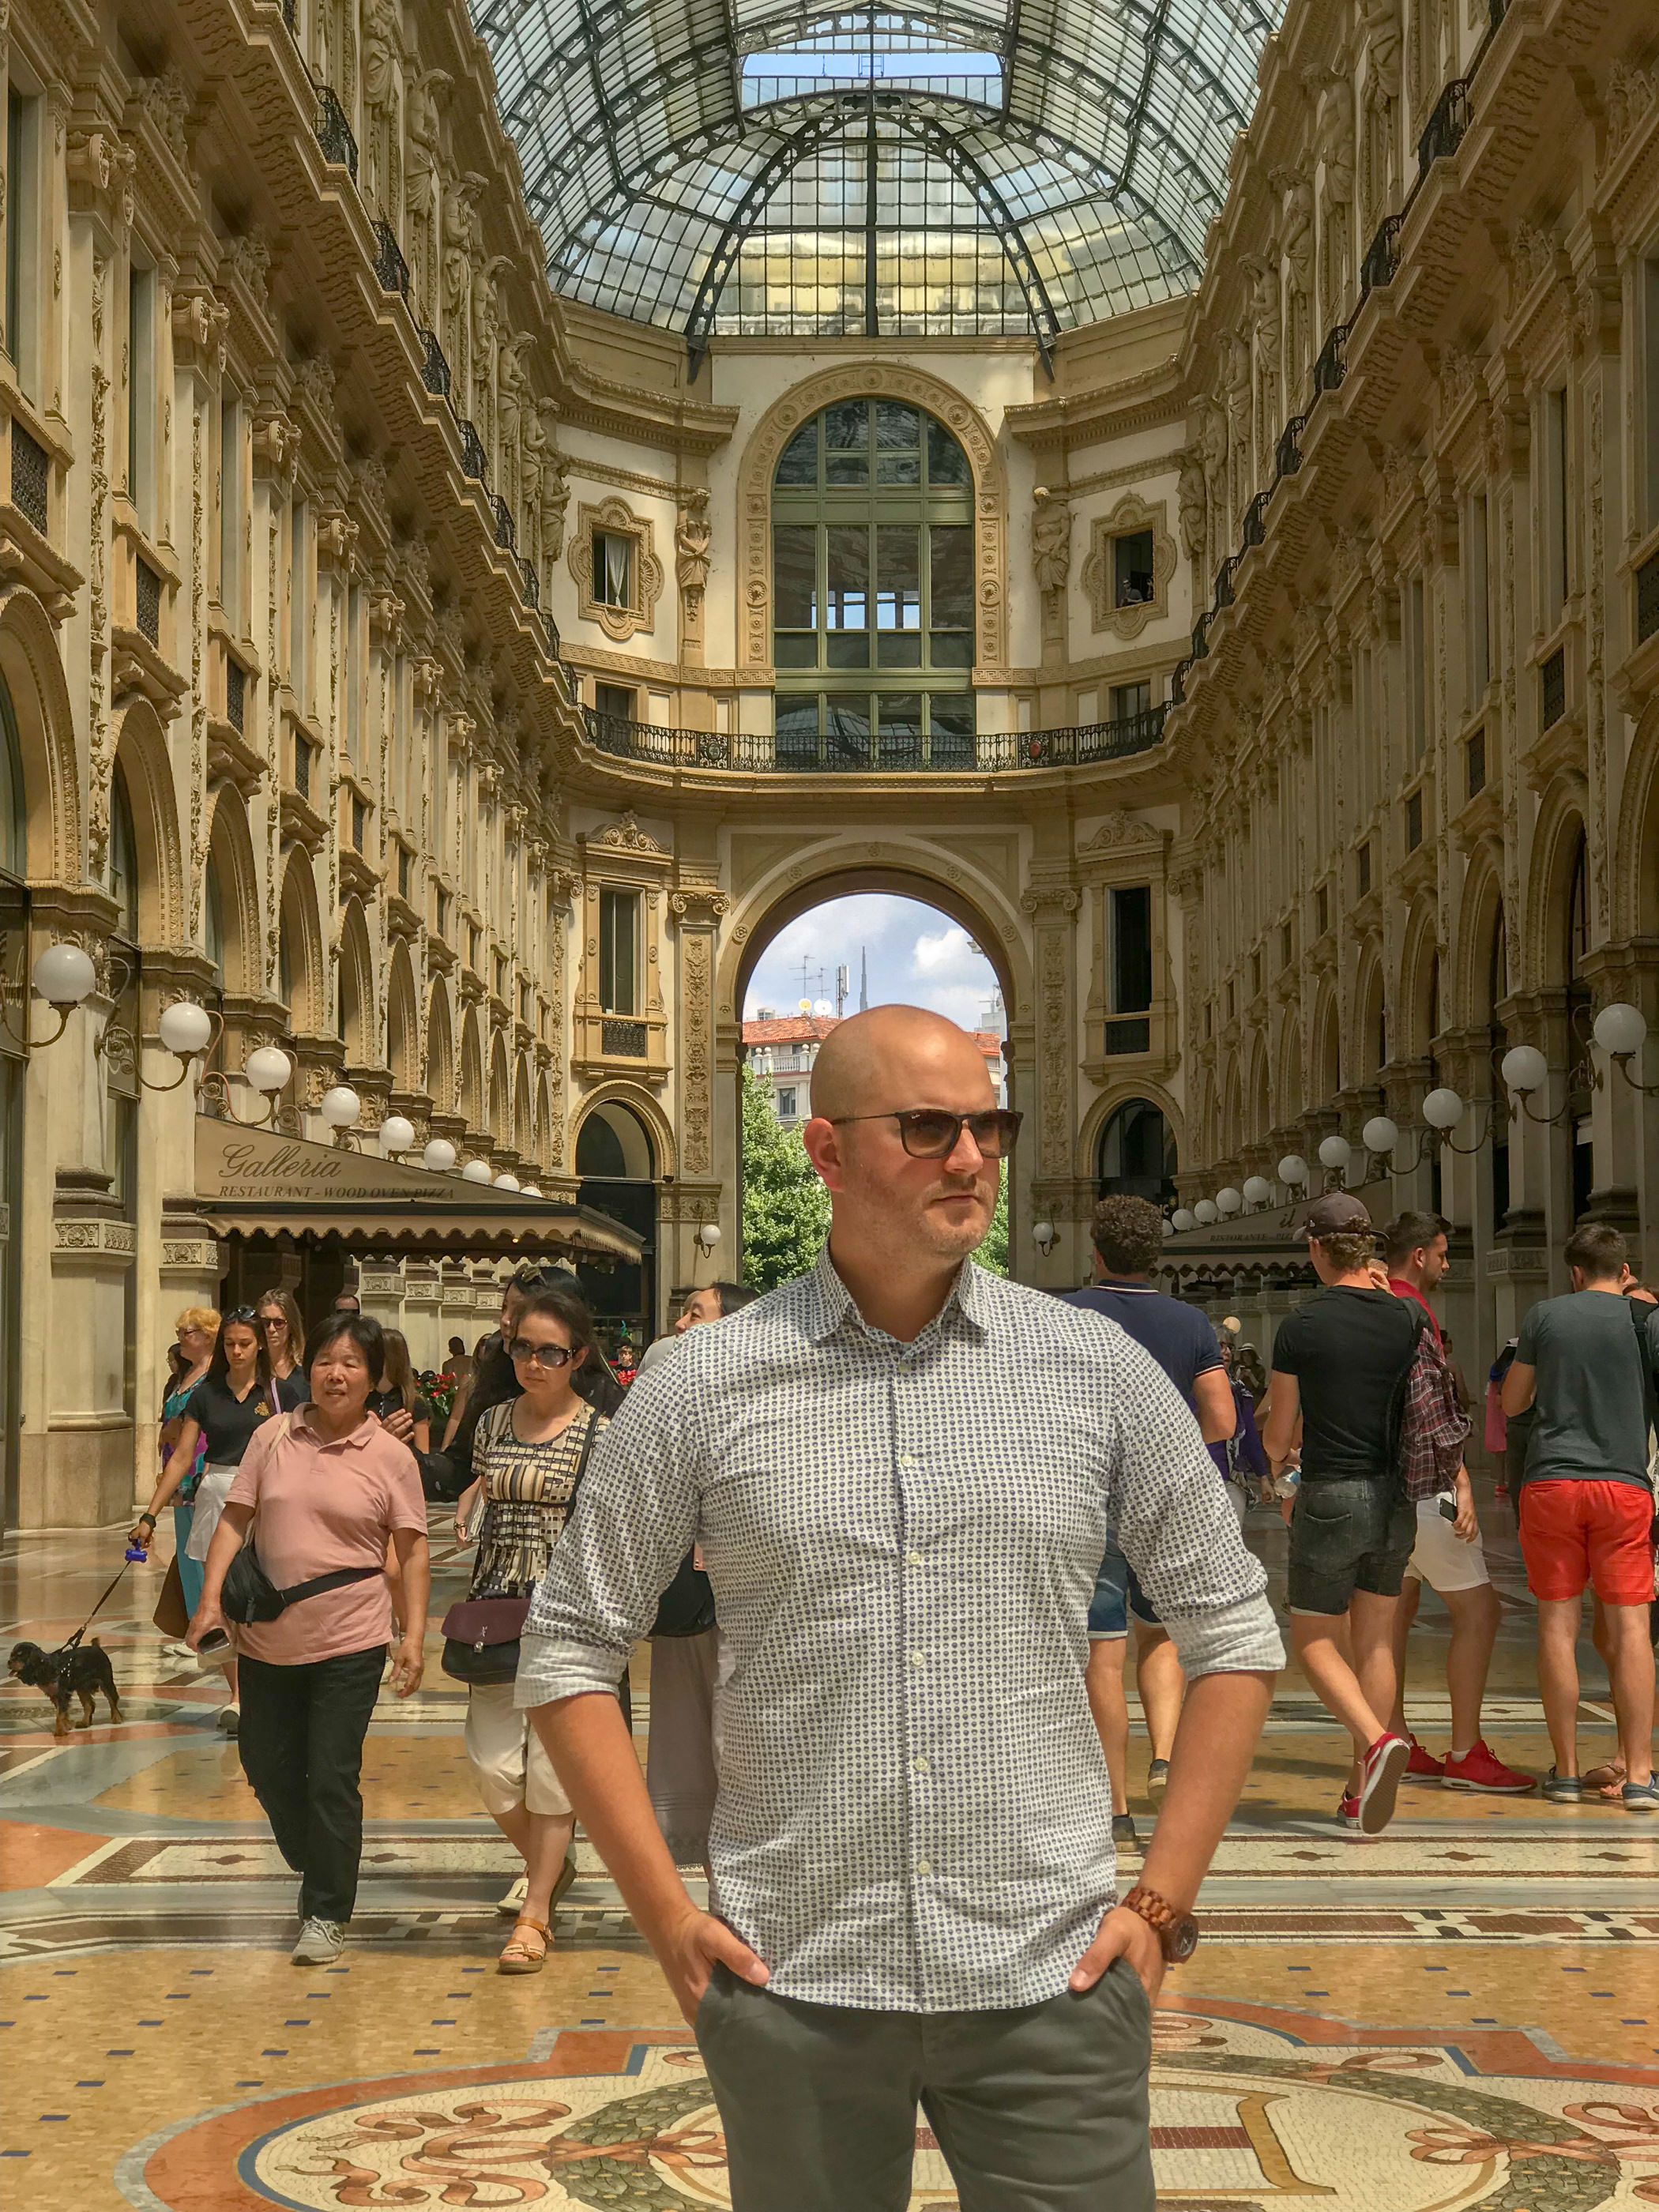 MYBELONGING-TOMMYLEI-TOP-MENS-BLOGGER-INFLUENCER-CREATIVE-AT-THE-DUOMO-MILAN-TRAVEL-PHOTOGRAPHY-VERSACE-GUCCI-PRADA-STREETSTYLE6.jpg